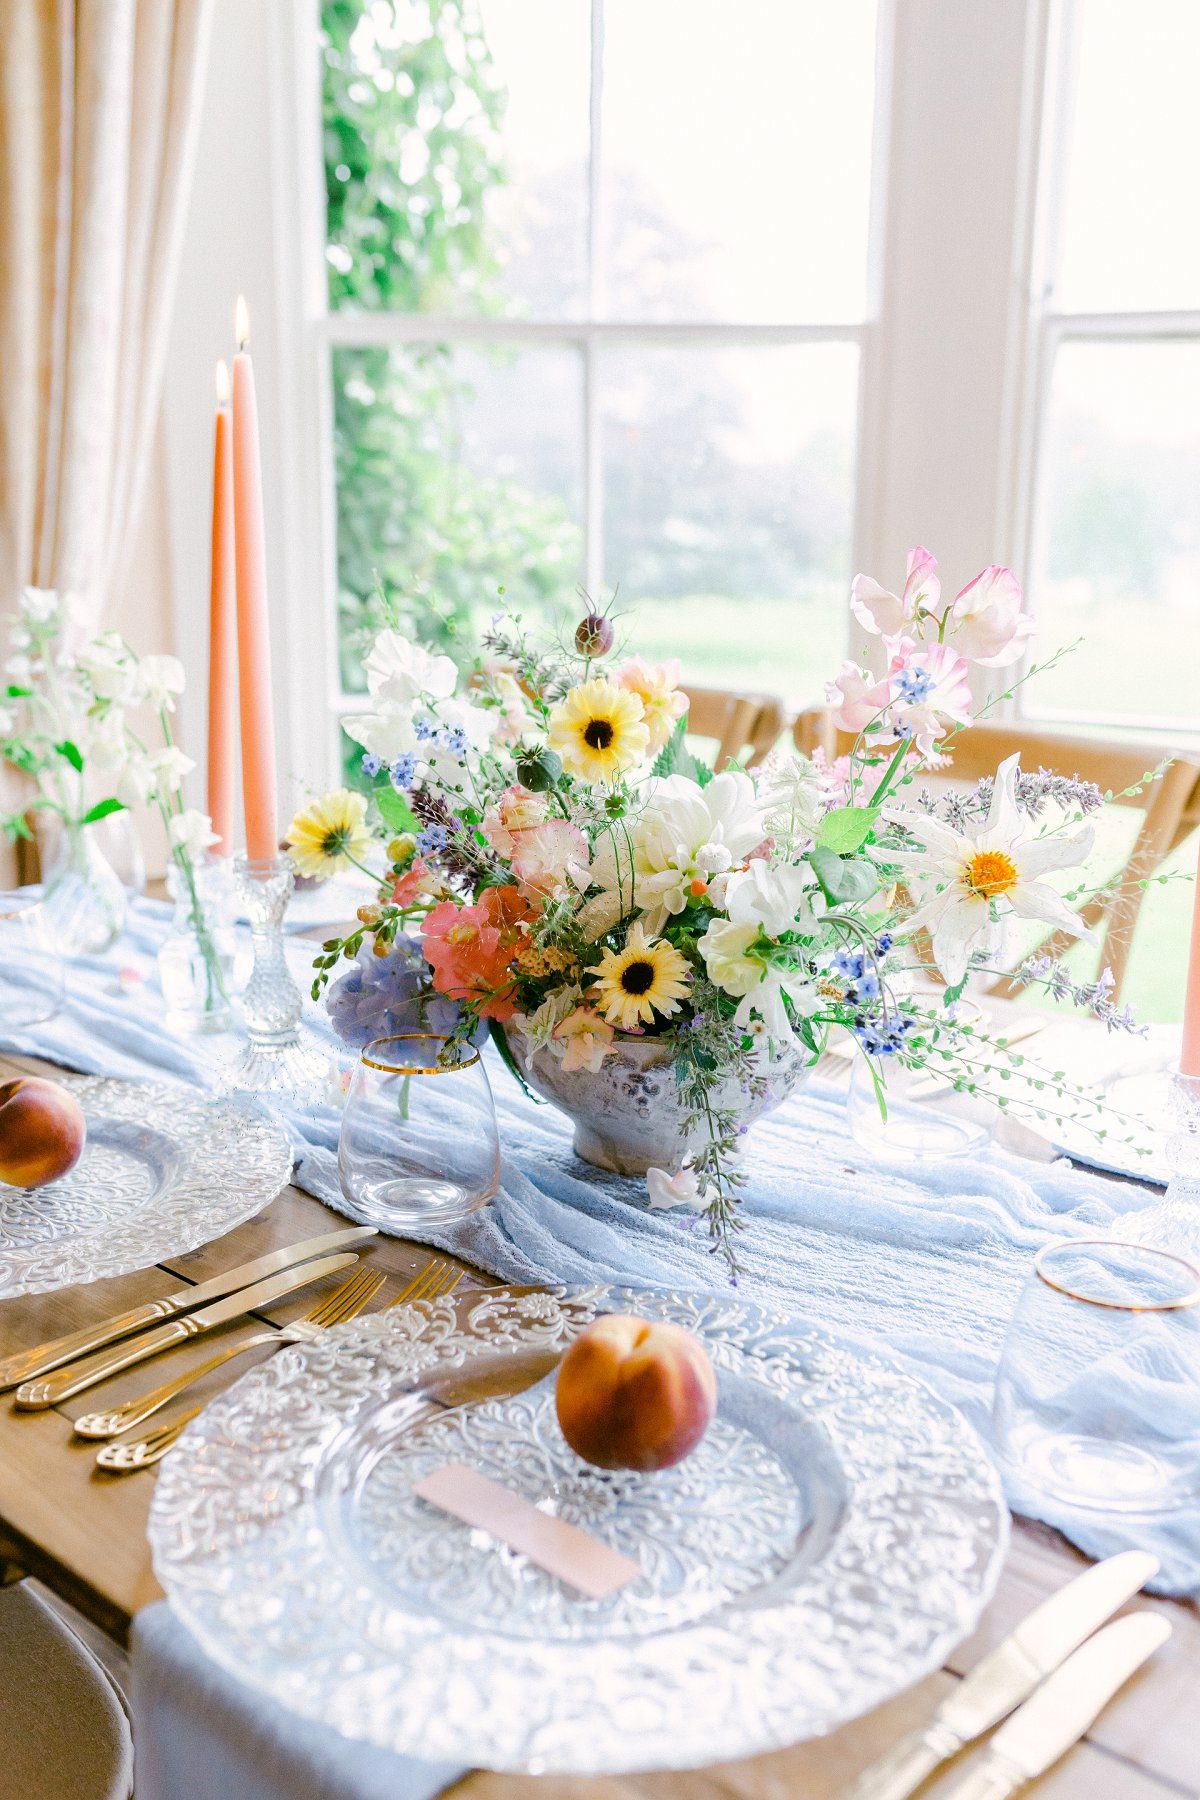 A Styled Wedding Shoot at Town Head Estate Windermere (c) Ailsa Reeve Photography (5)